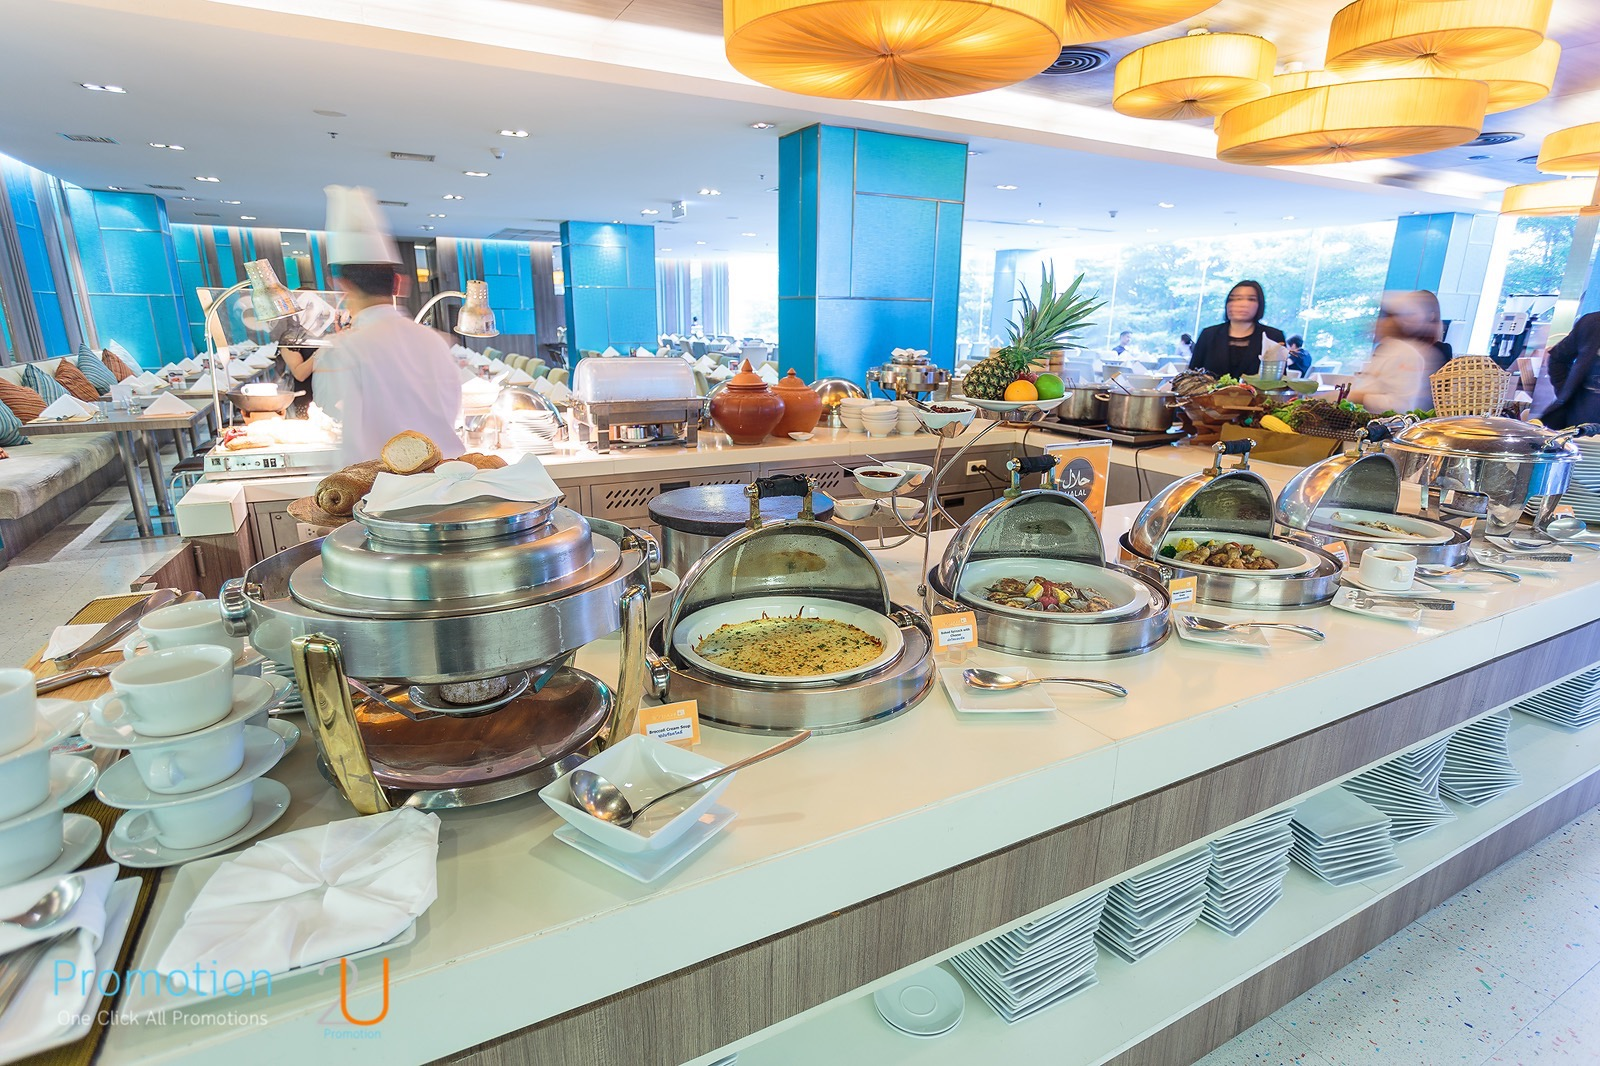 Review promotion muangthong koongtung bufft at the suare novotel impact P75